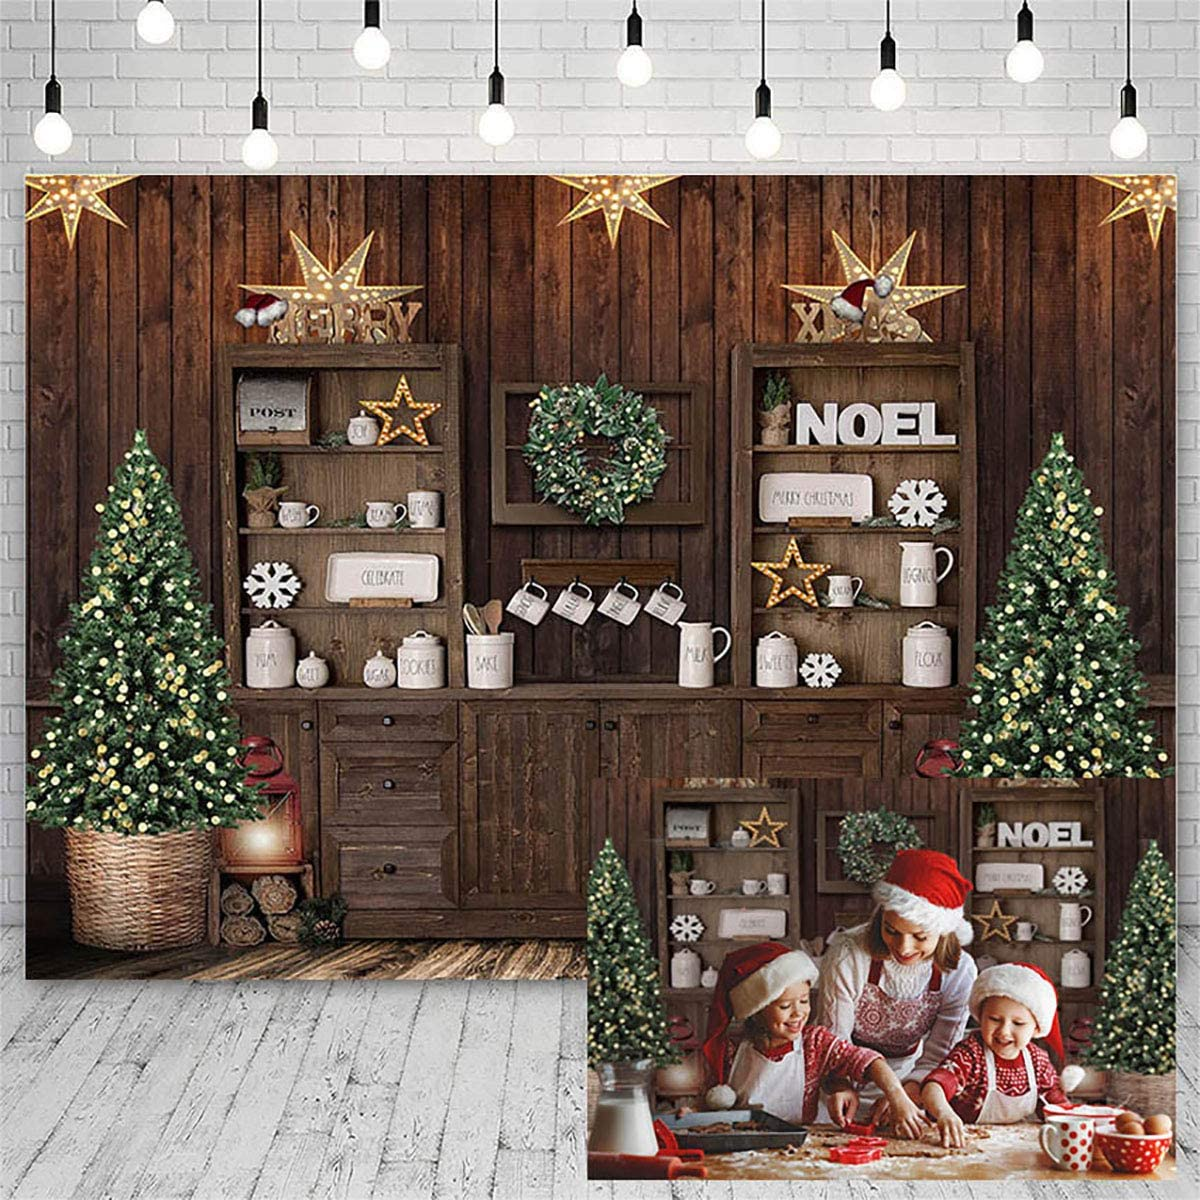 Mocsicka Christmas Kitchen Photography Backdrop Retro Wood Wall Cooking House Family Party Background Pine Tree Decoration Xmas Baby Kids Portrait Photo Studio Photobooth Props (7x5ft)